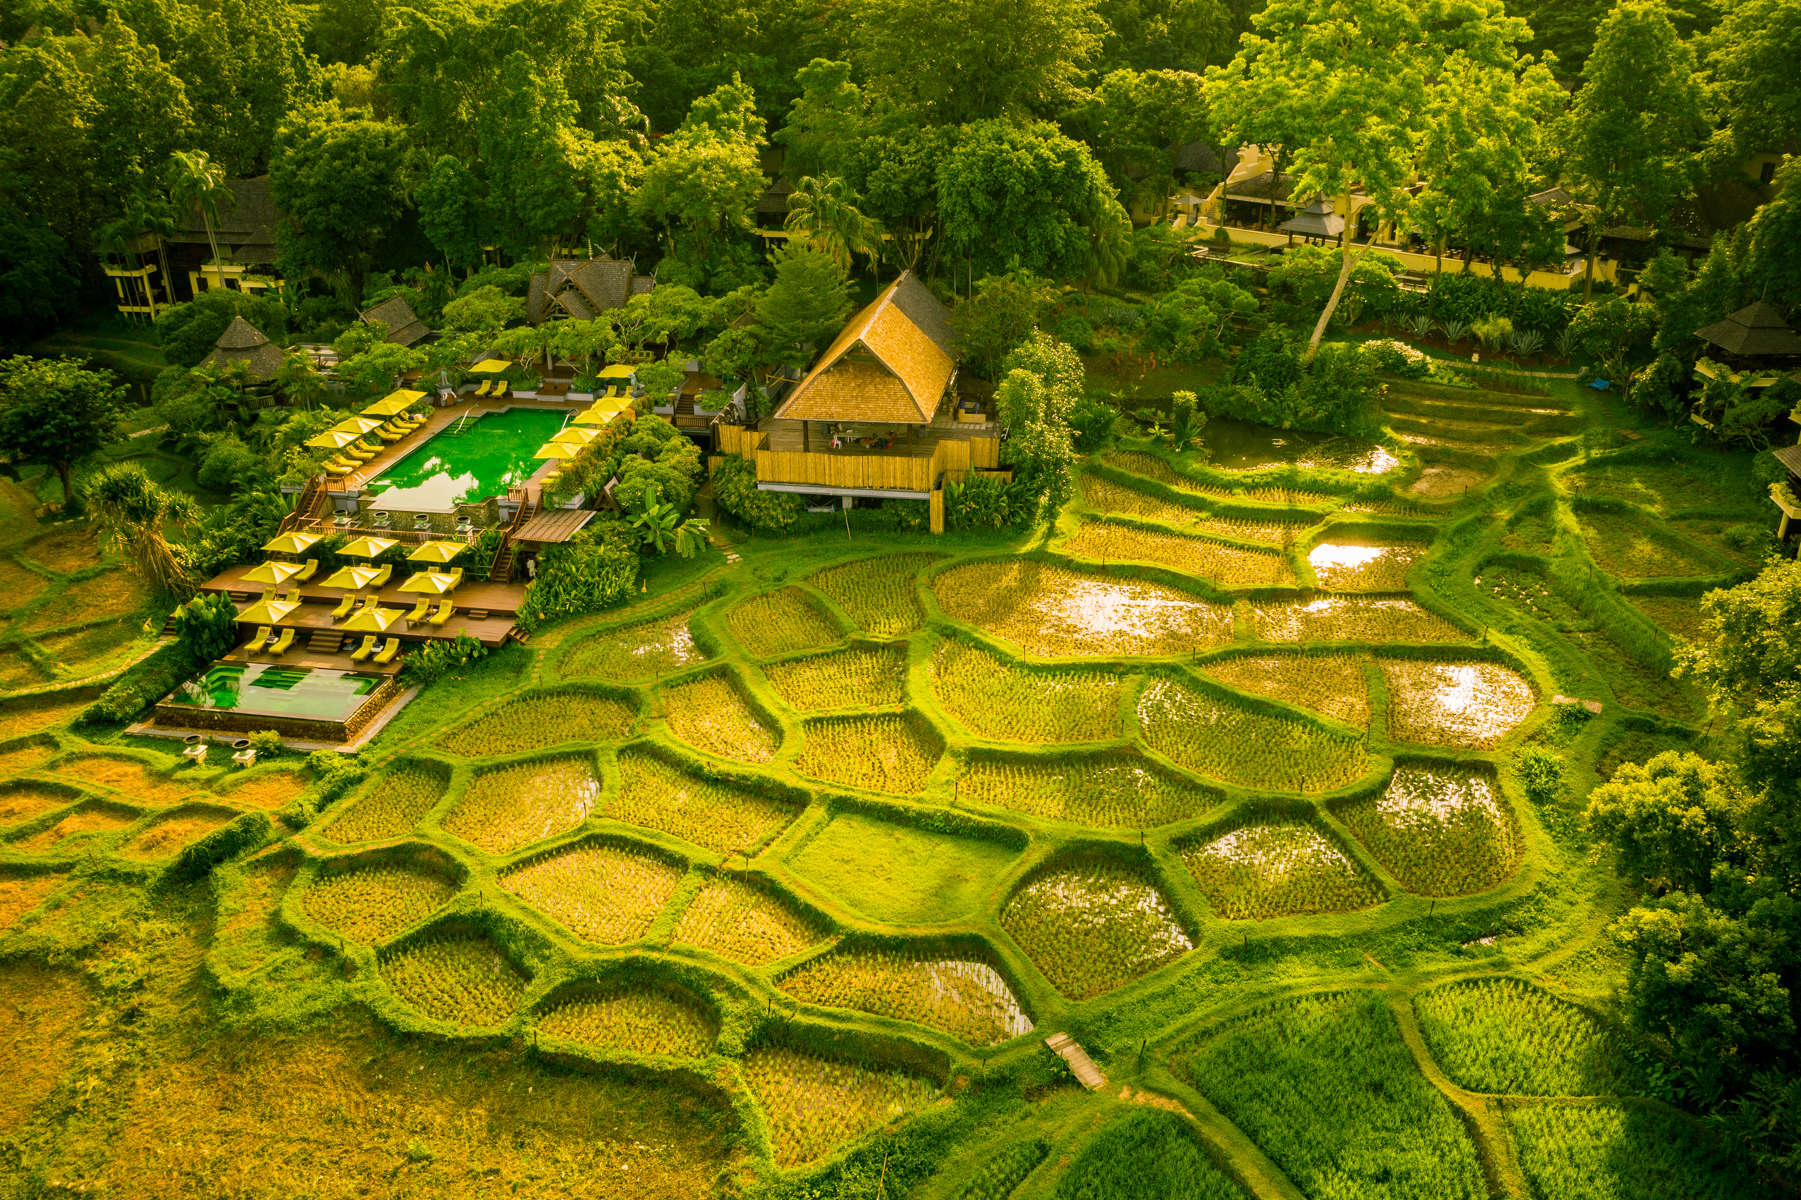 The beautiful emerald green swimming pool and restaurant surrounded by rice paddies.